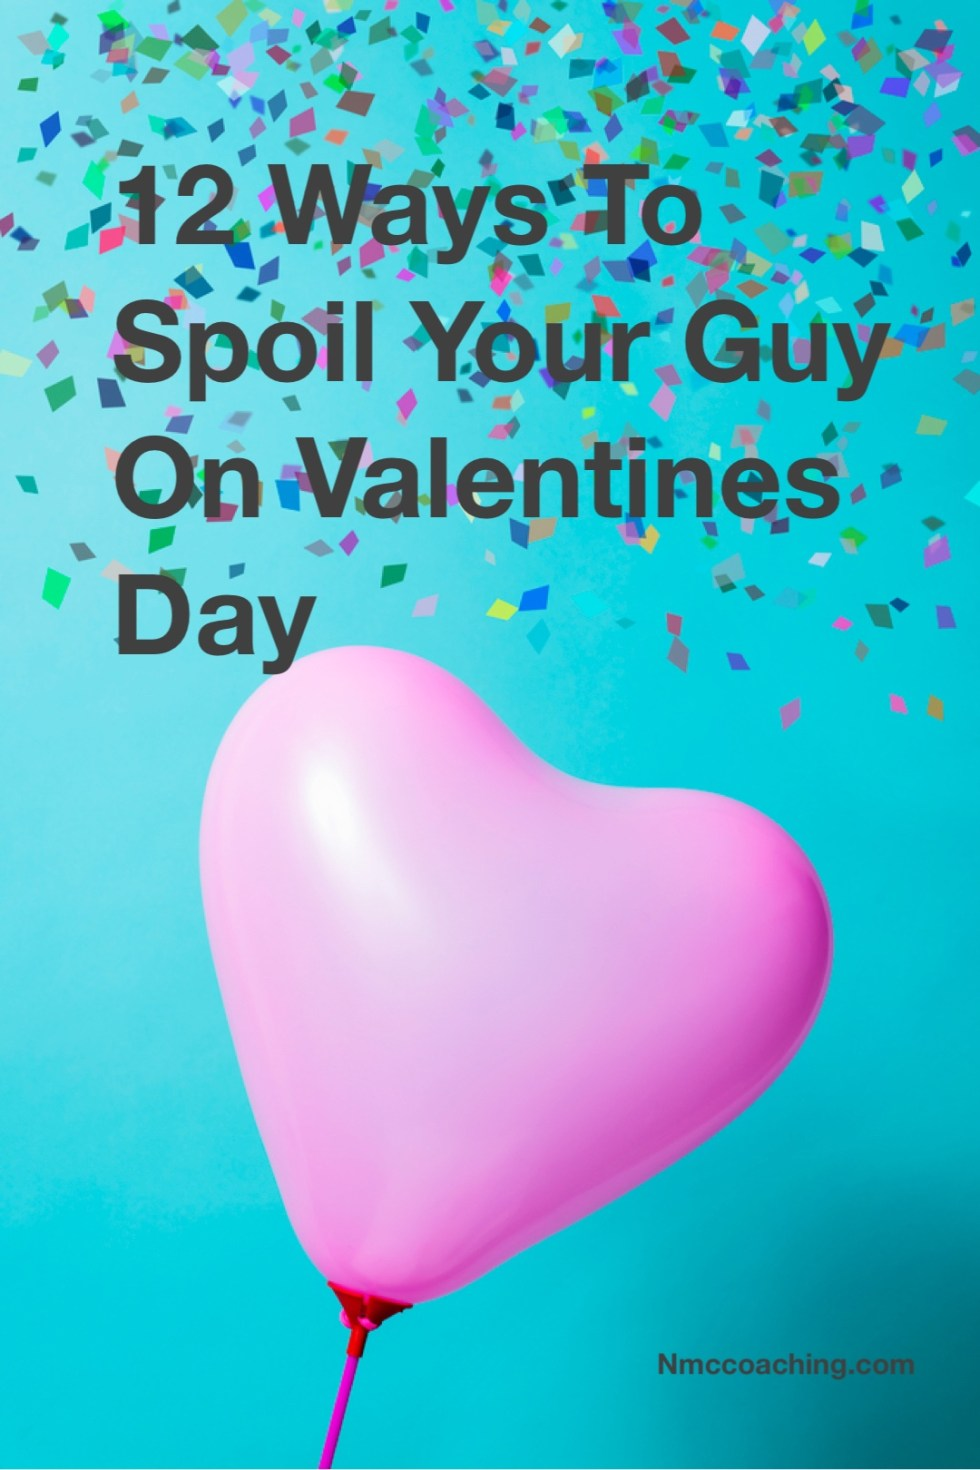 12 Ways to Spoil Your Guy on Valentine's Day